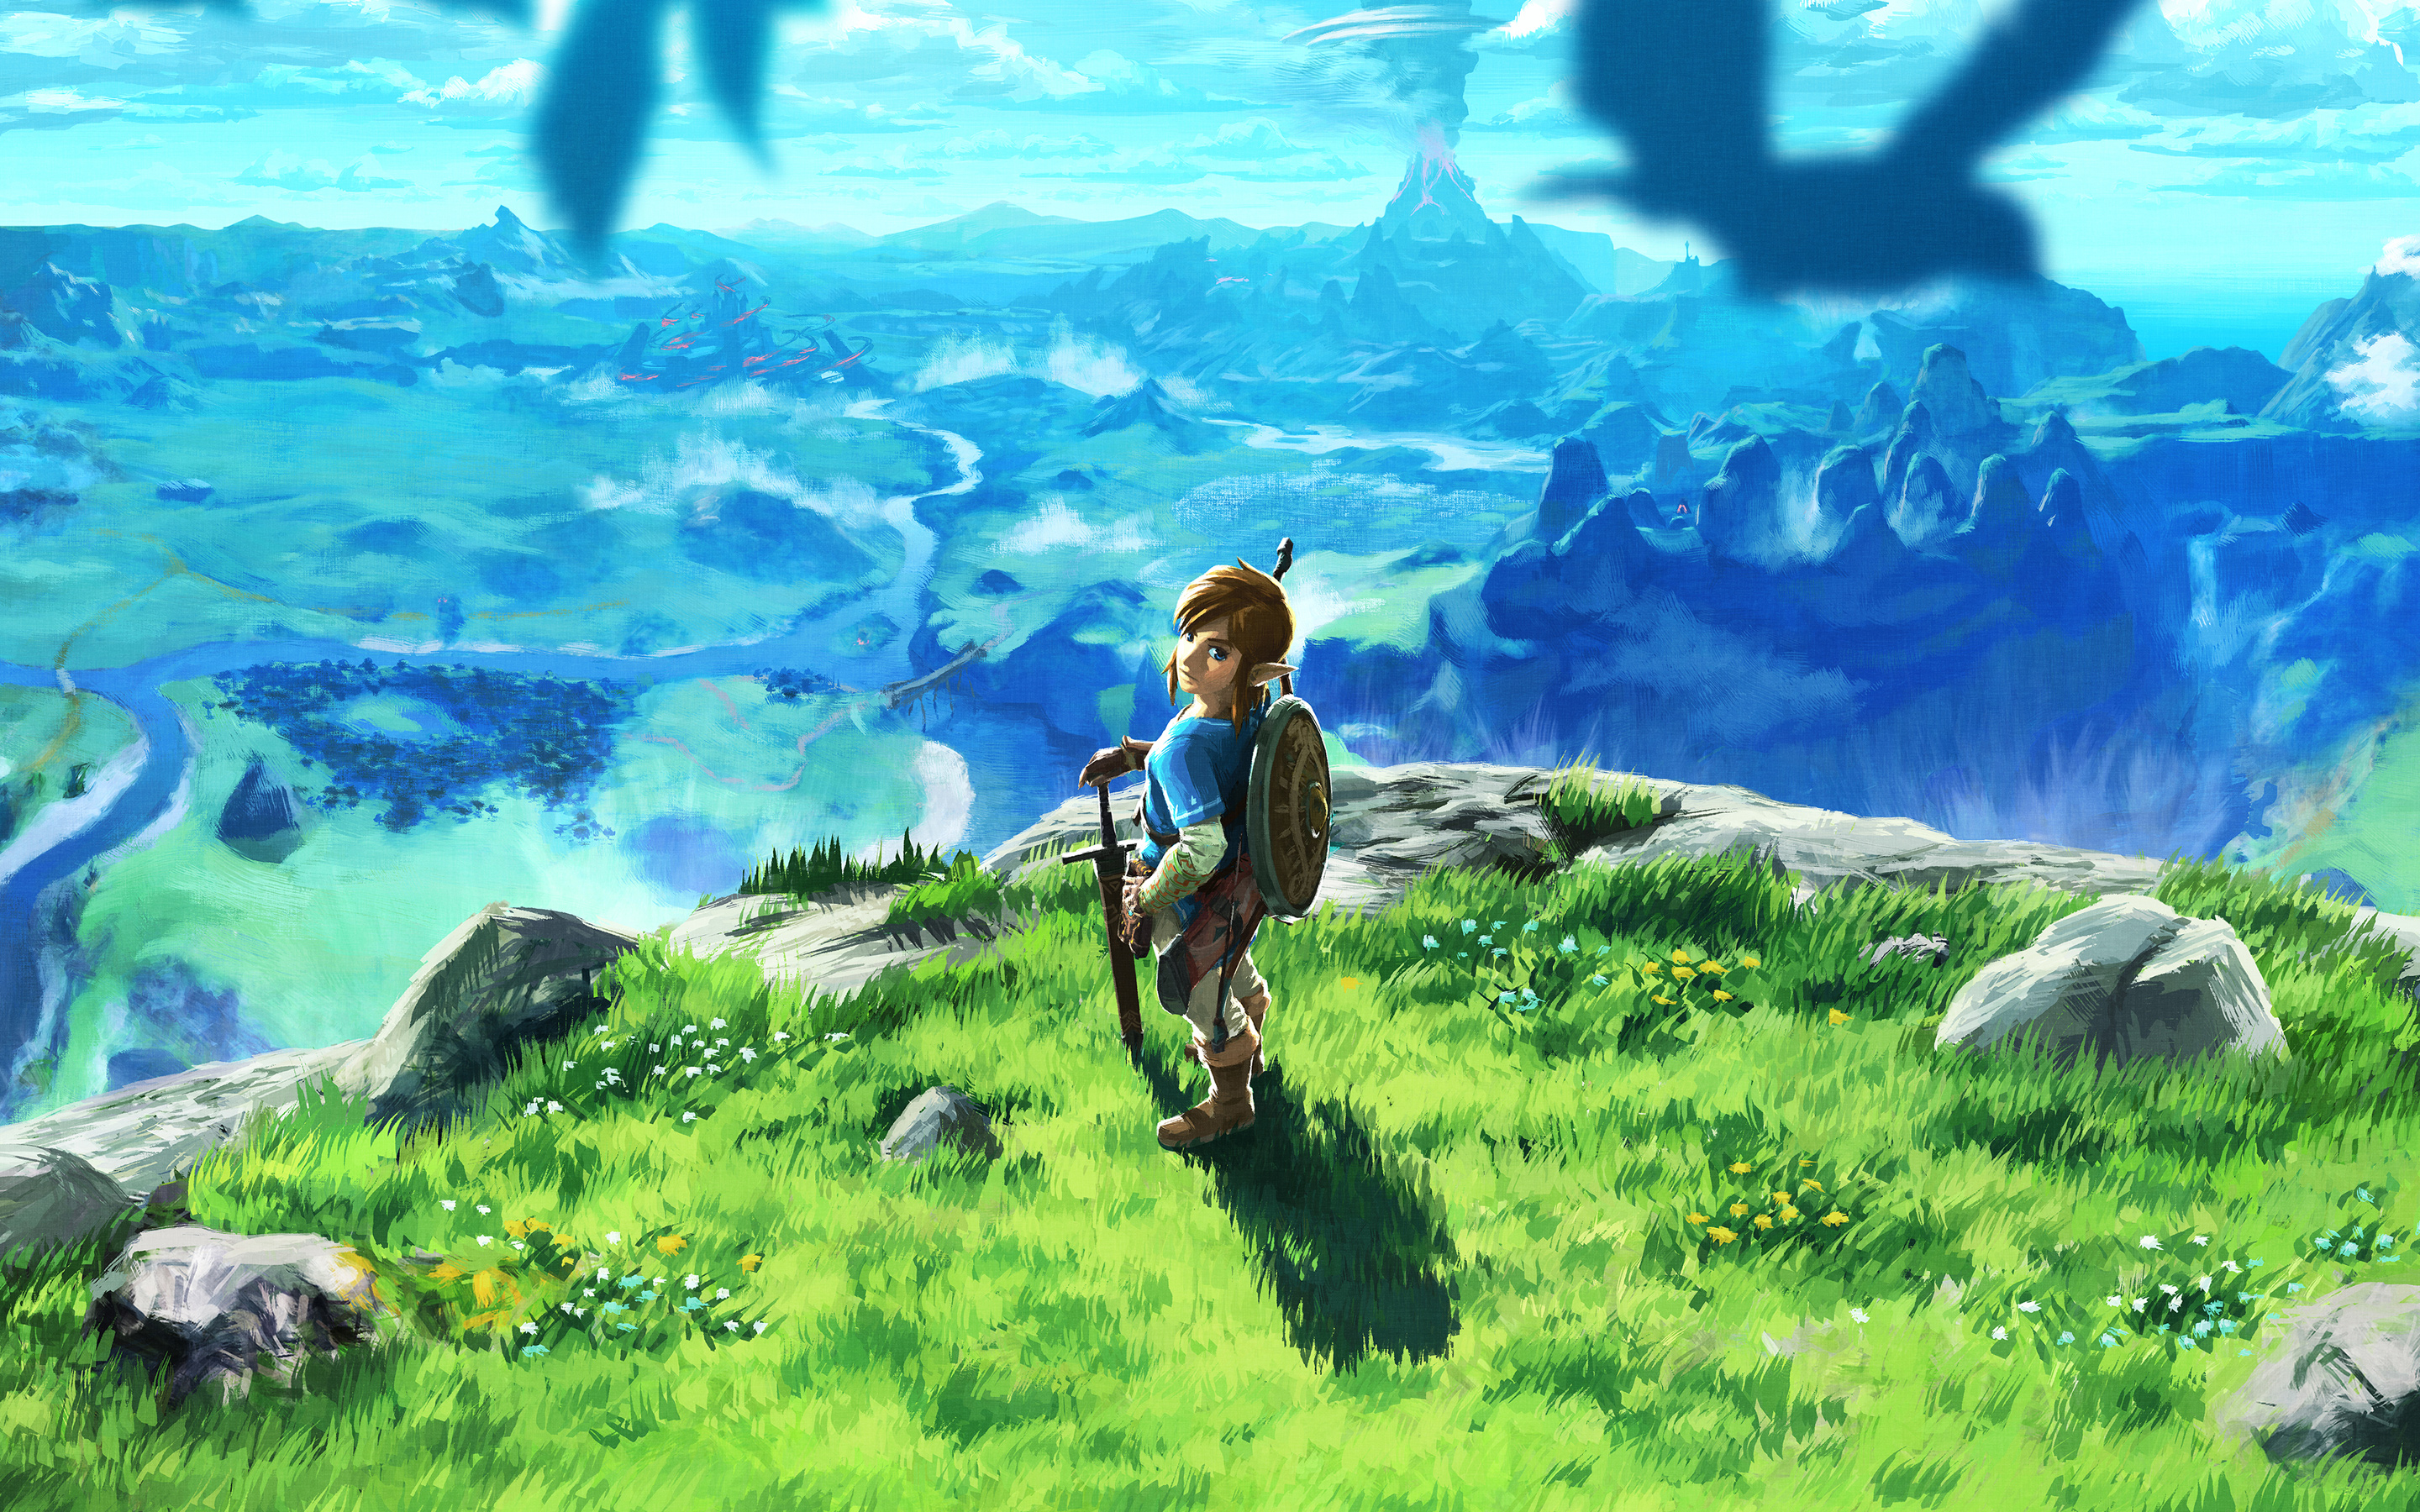 Free Download The Legend Of Zelda Breath Of The Wild Hd Wallpaper